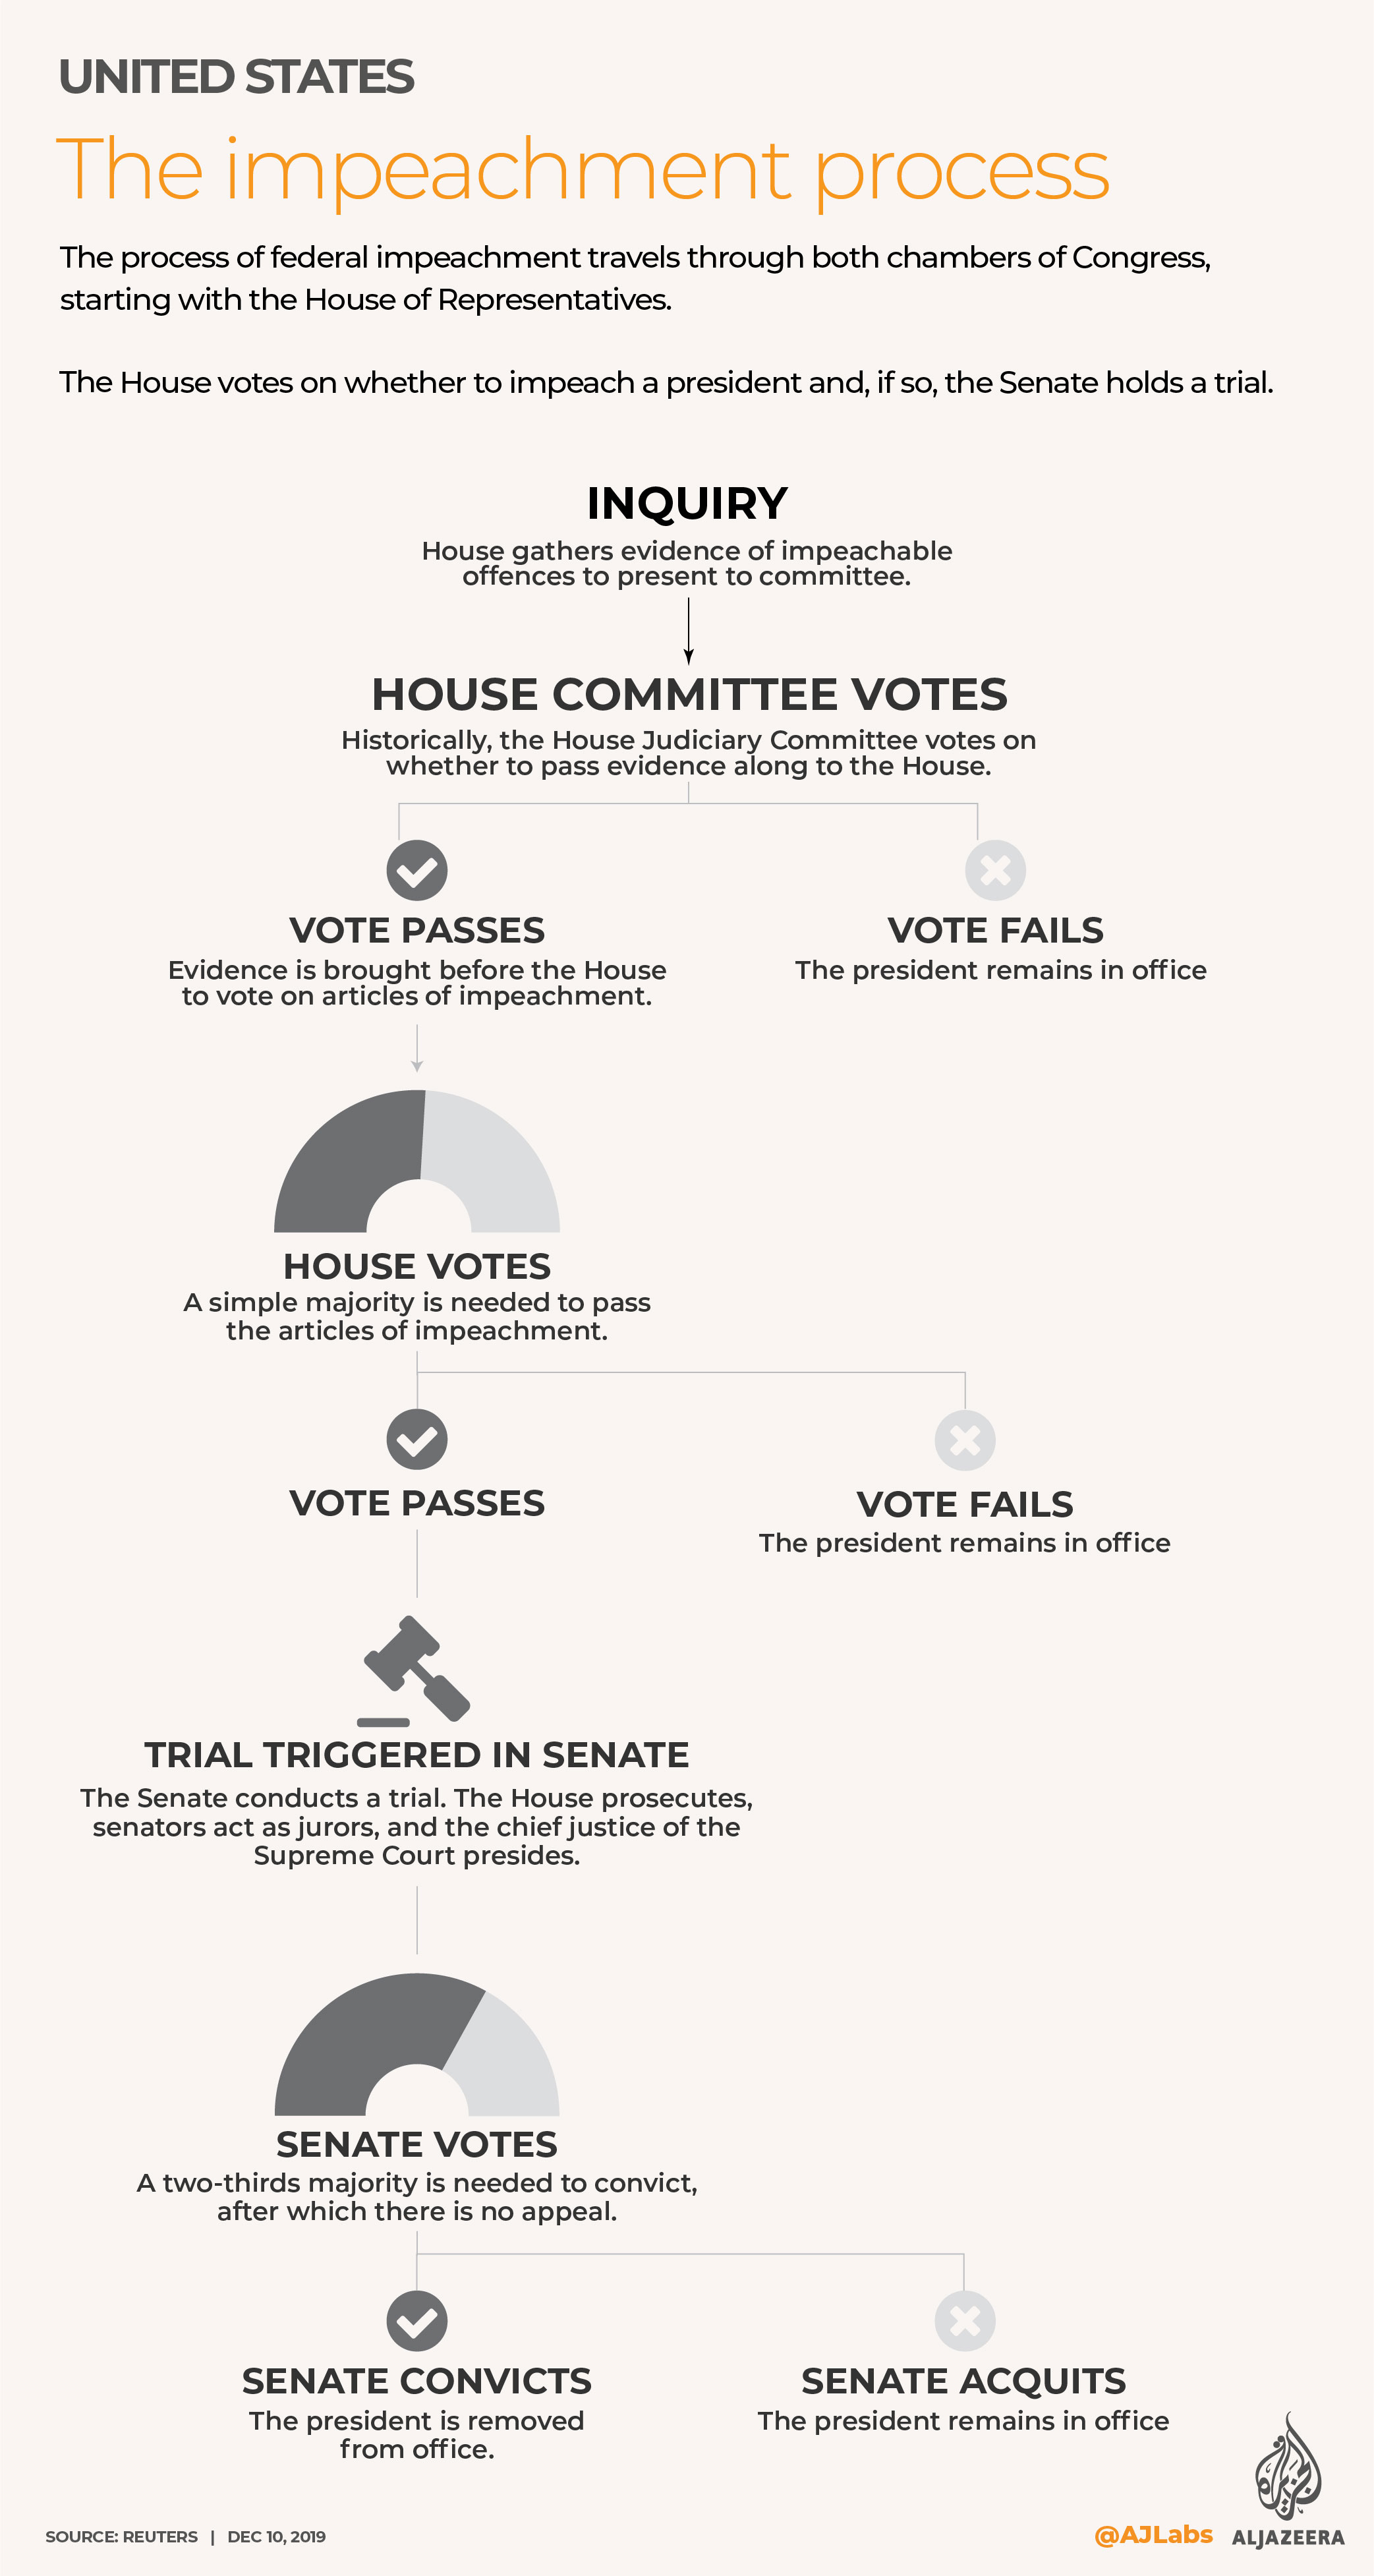 INTERACTIVE - US Impeachment process